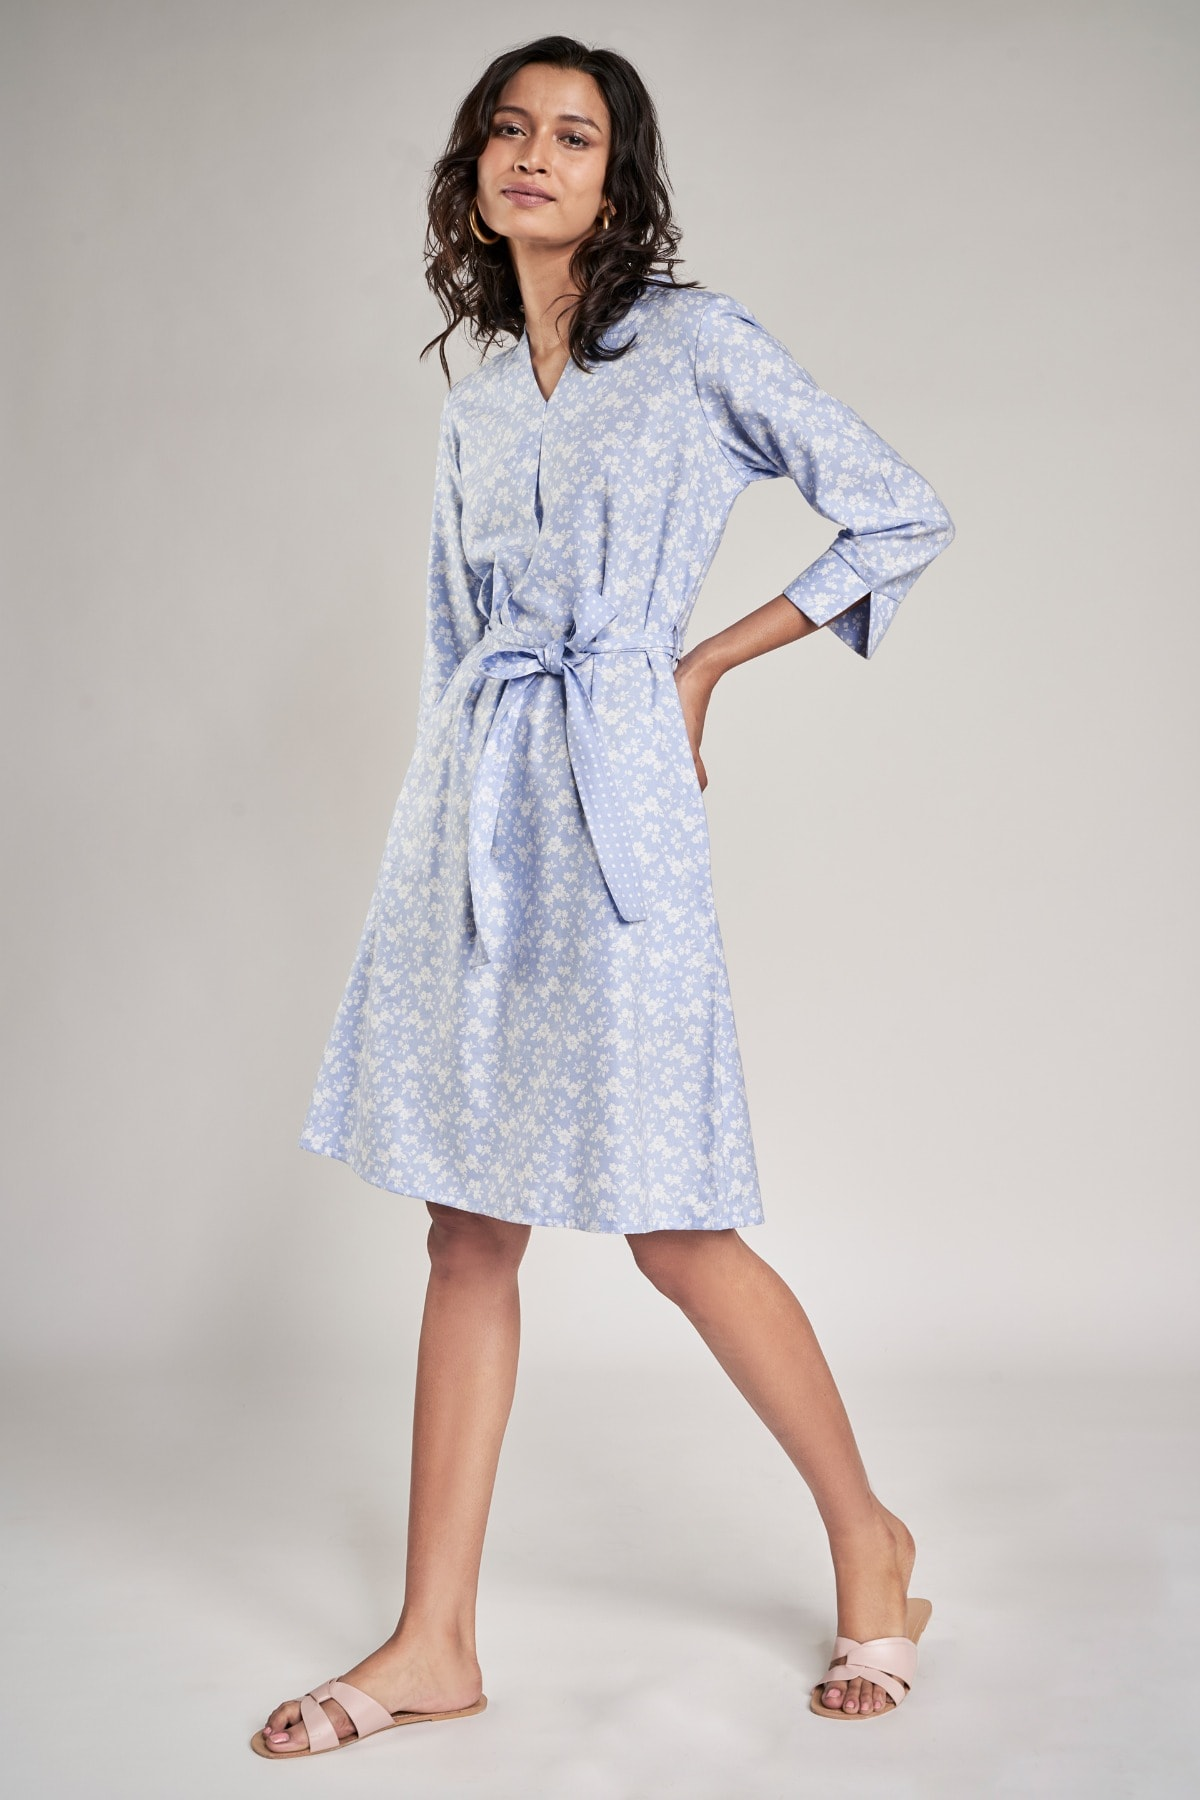 AND   Powder Blue Floral Printed Shift Dress